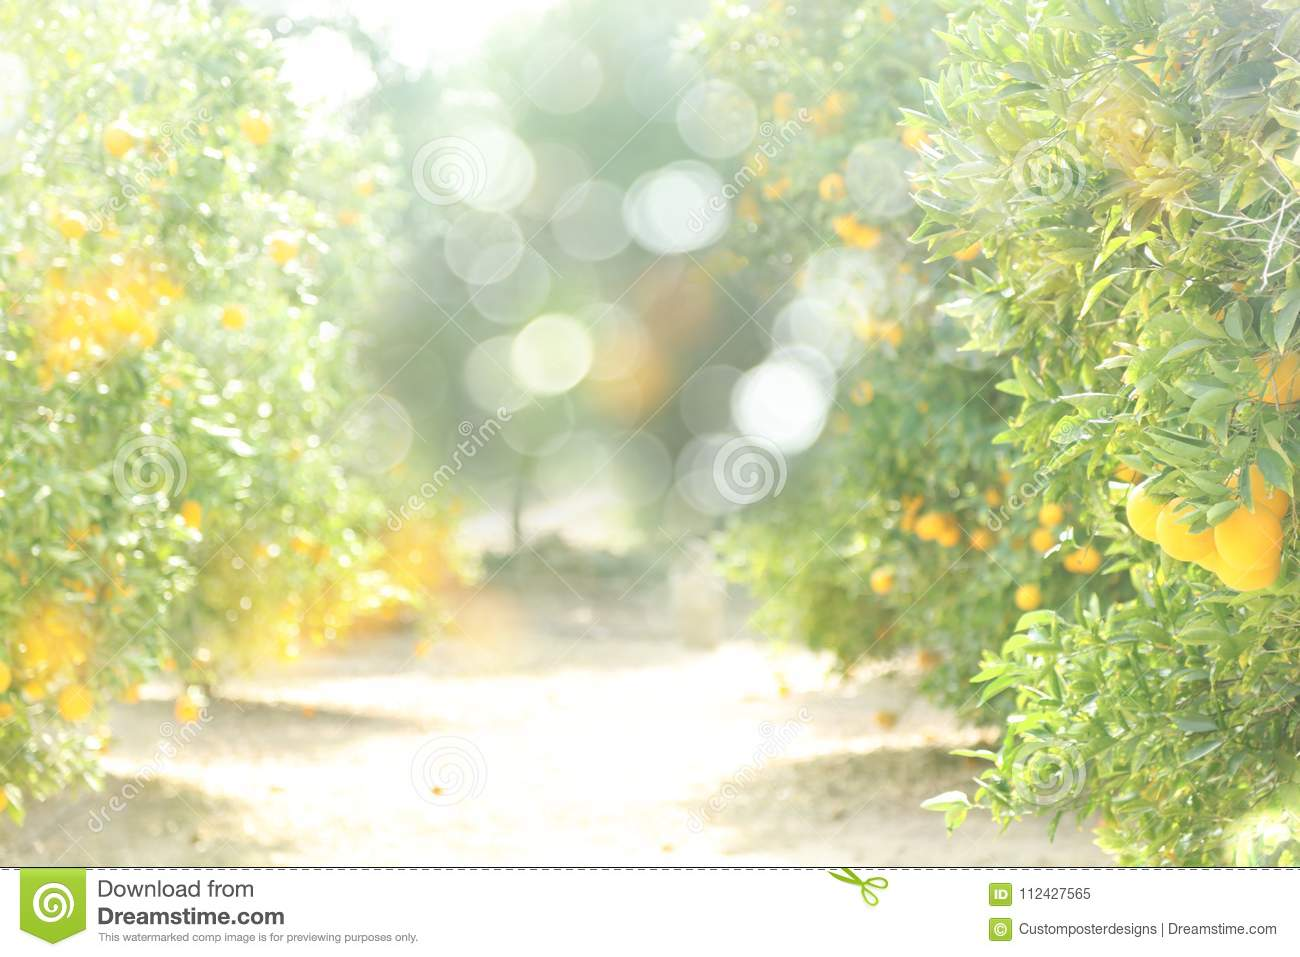 Download A Sunny Blurred Background Of An Orange Orchard. Stock Image - Image of grow, juicy: 112427565